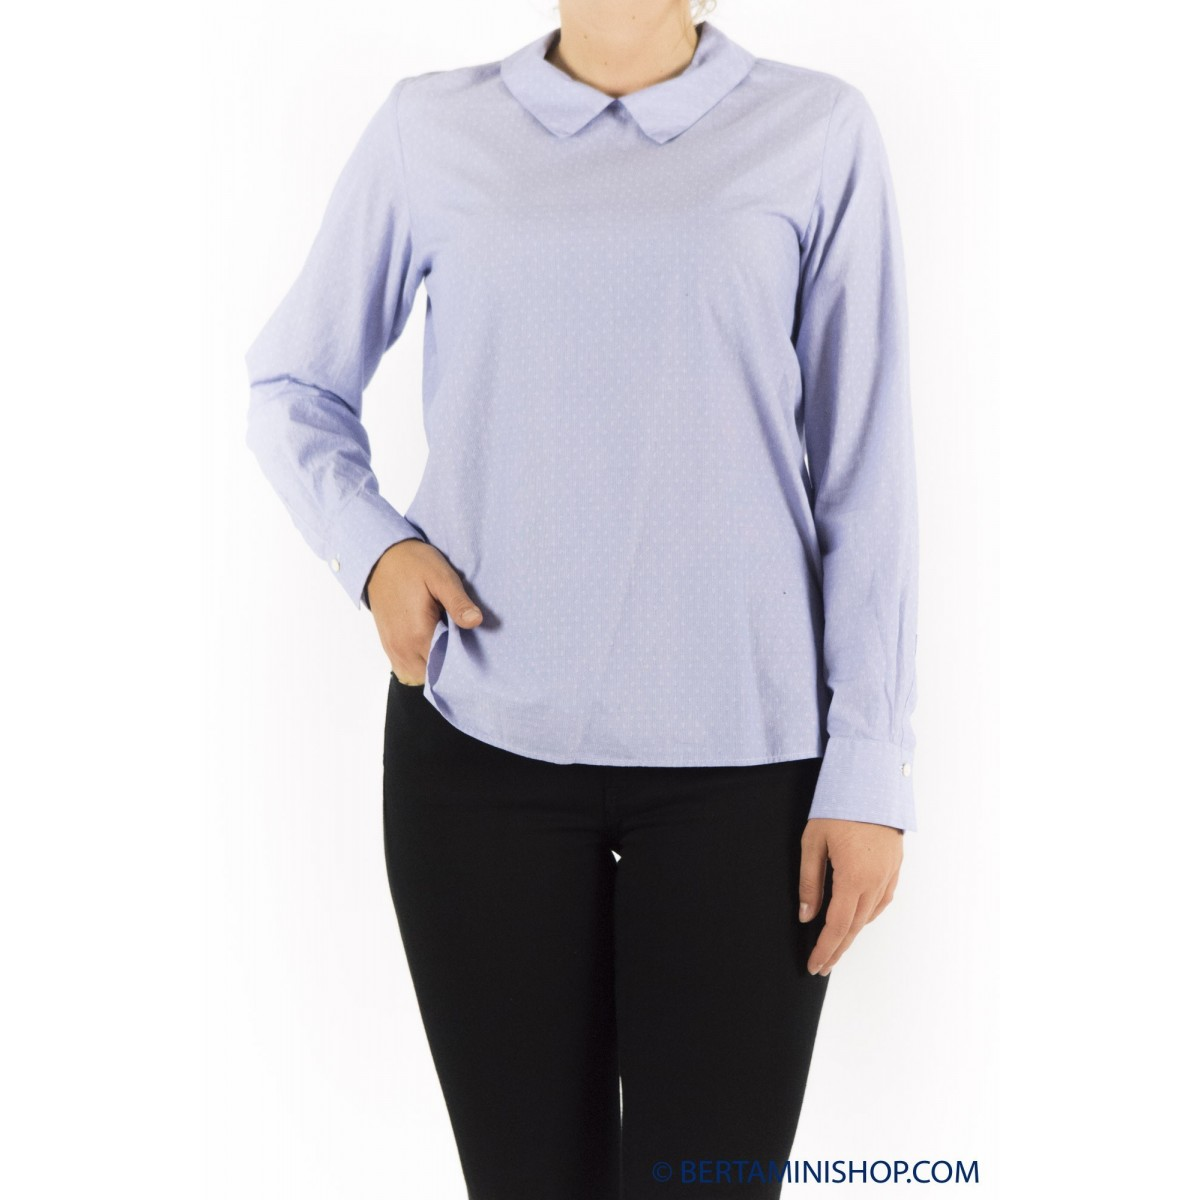 Camicia donna Glanshirt red - Blanch l6523 802- Azzurra puntino